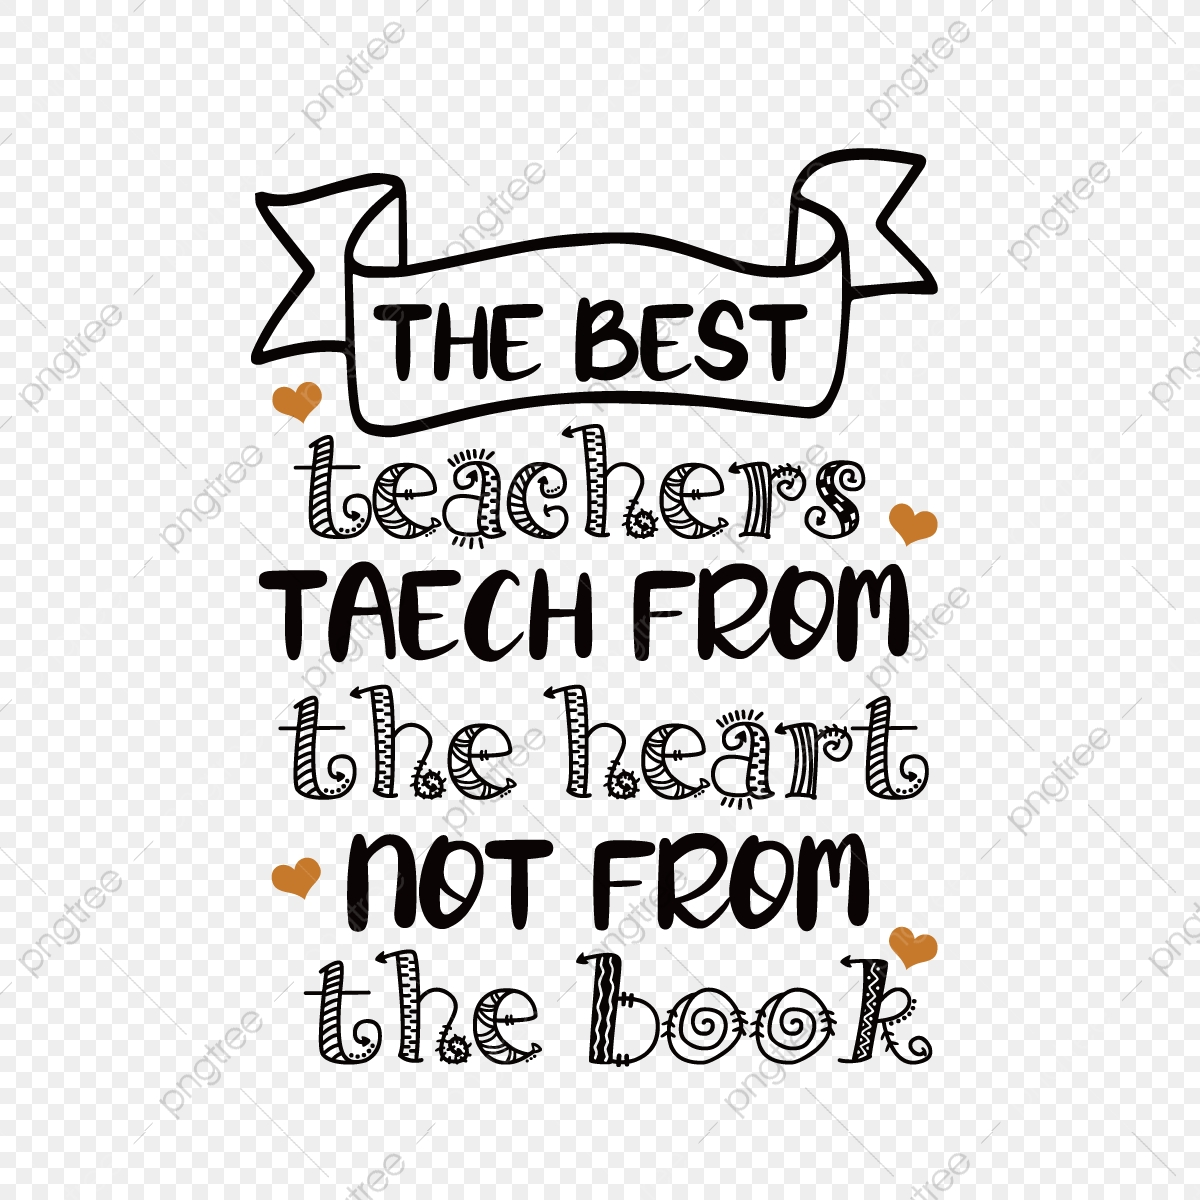 Handwritten Black Best Teacher Teaches Simple Phrases From The Heart Svg Font Effect Eps For Free Download